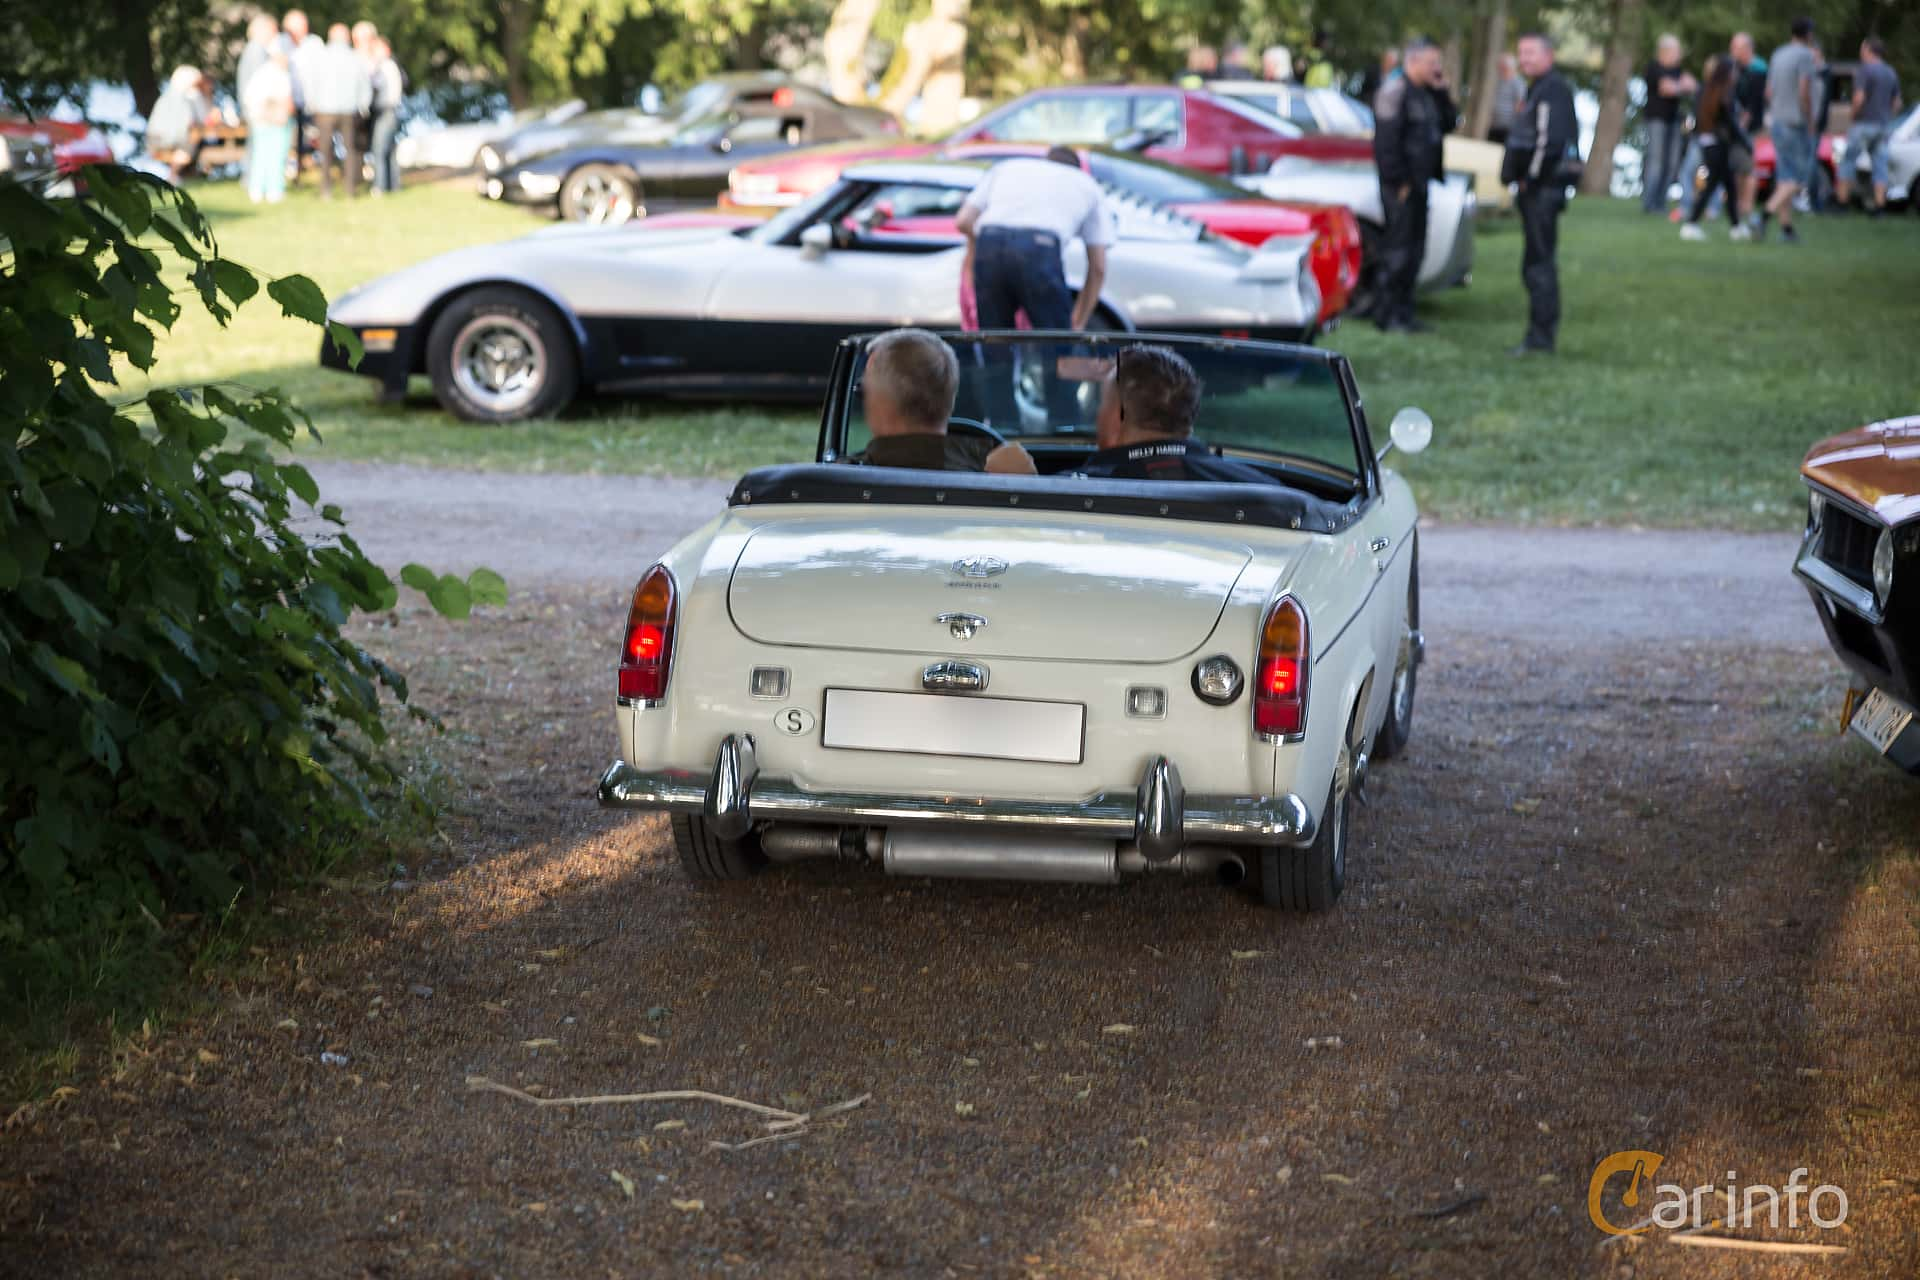 MG Midget 1.3 Manual, 65hp, 1968 at Classic cars på Sundby gård v35 2015